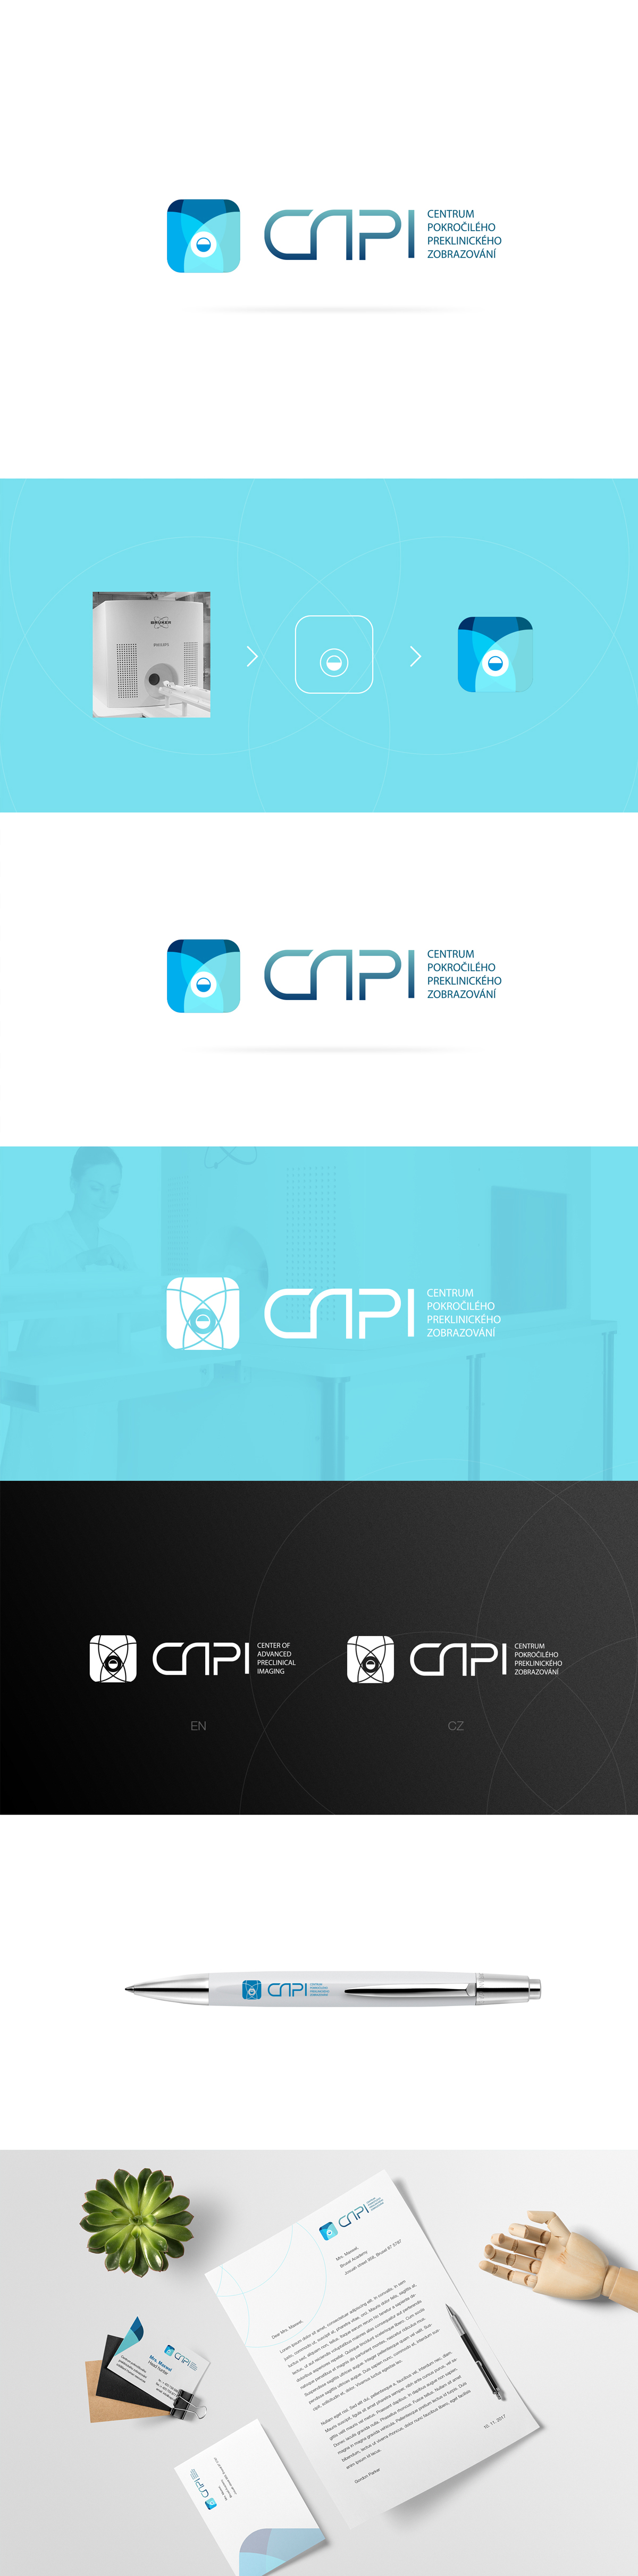 CAPI logo design on Behance